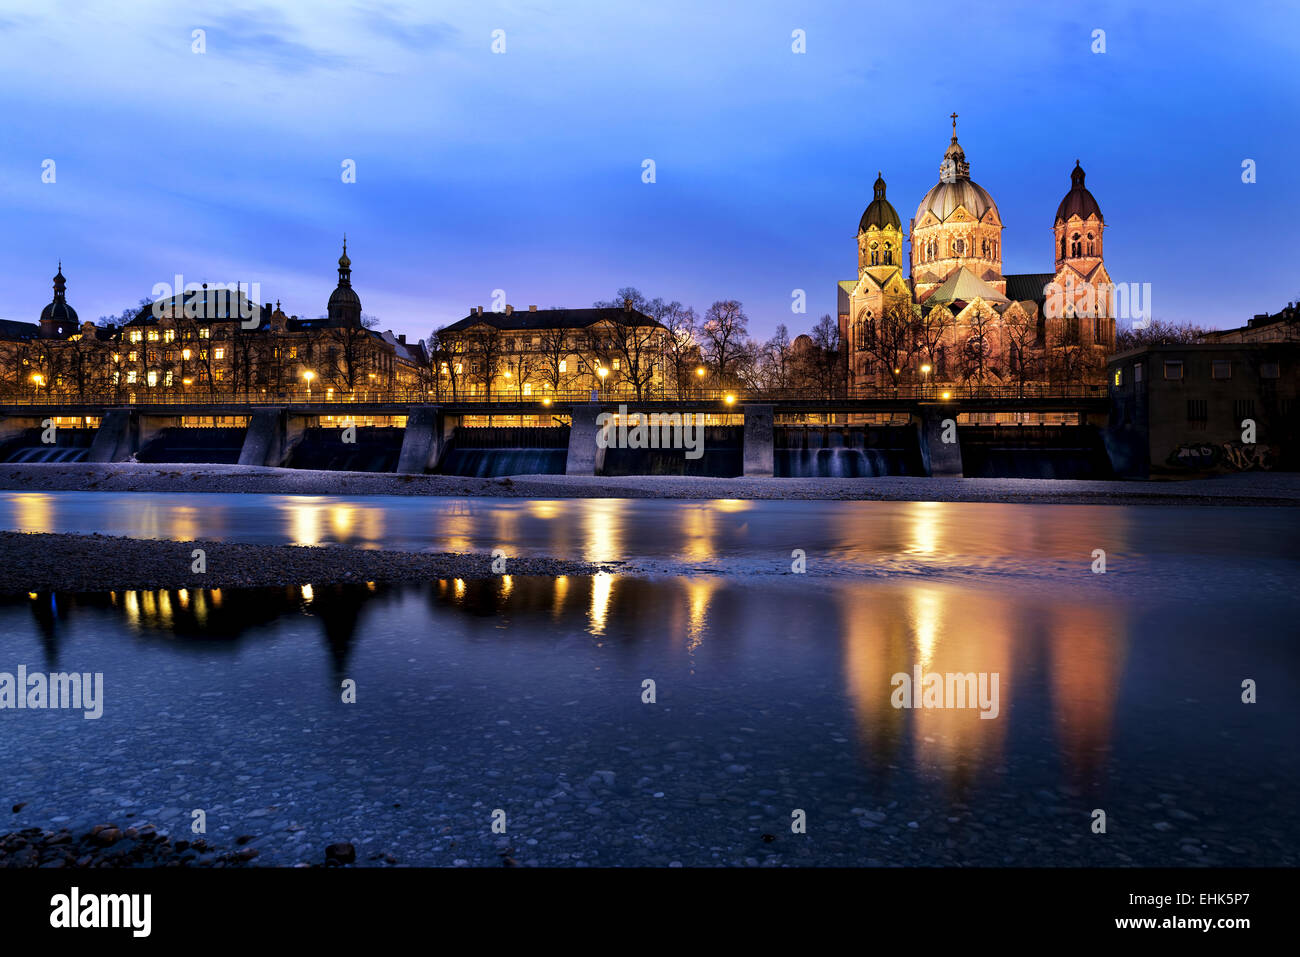 St. Luke Church, is the largest Protestant church in Munich, Germany - Stock Image